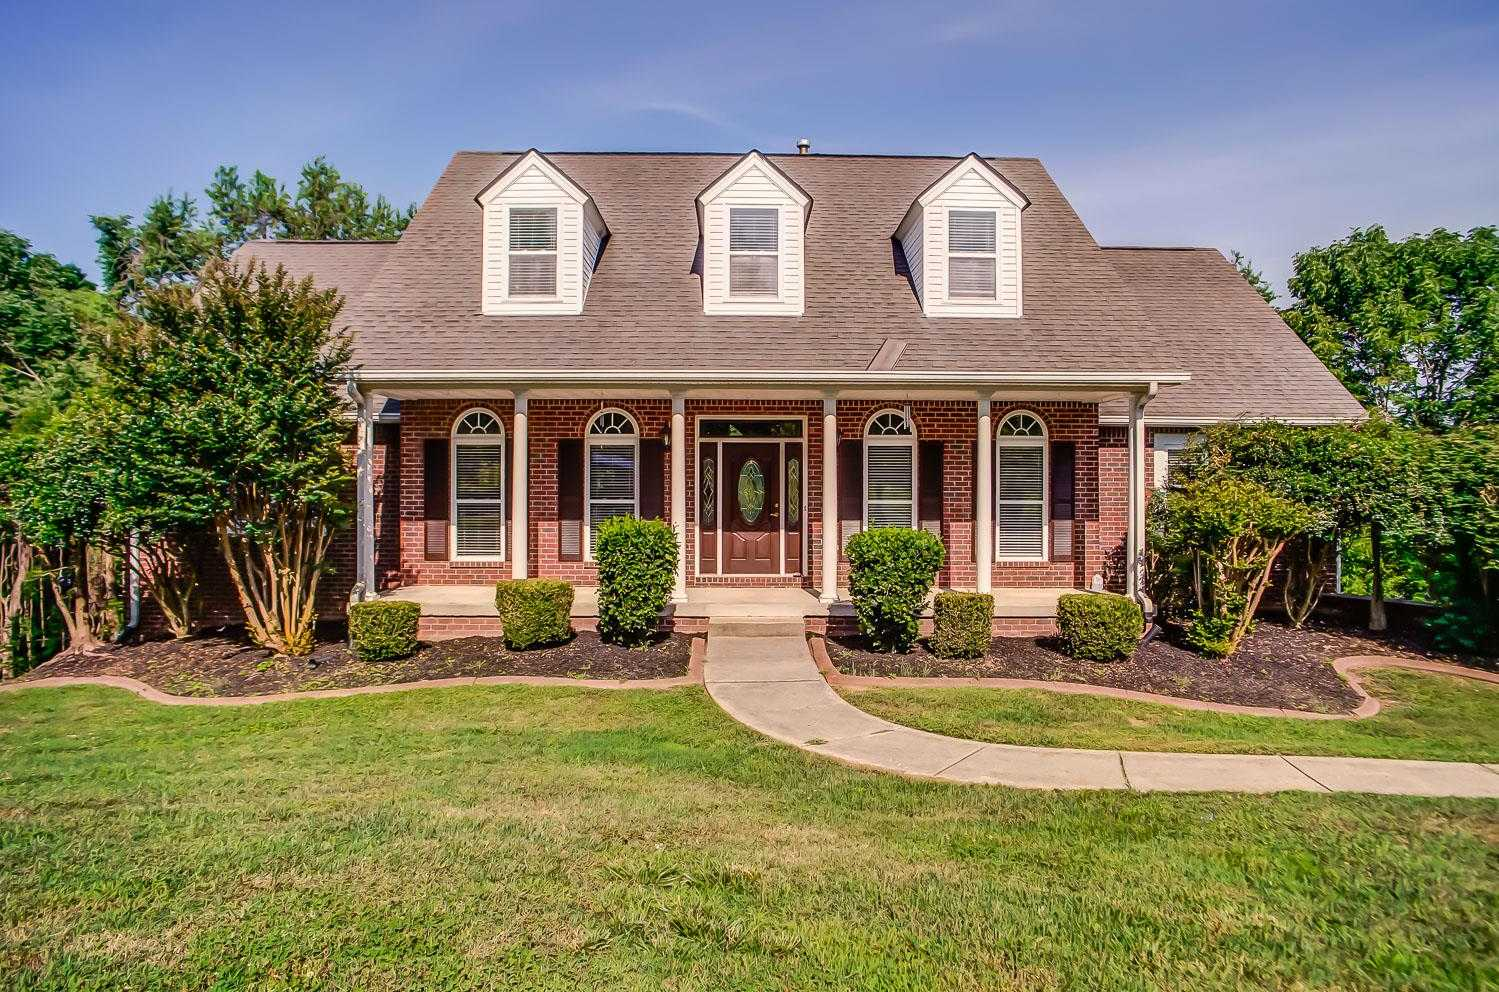 $469,900 - 4Br/4Ba -  for Sale in Langford Farms 7d, Old Hickory